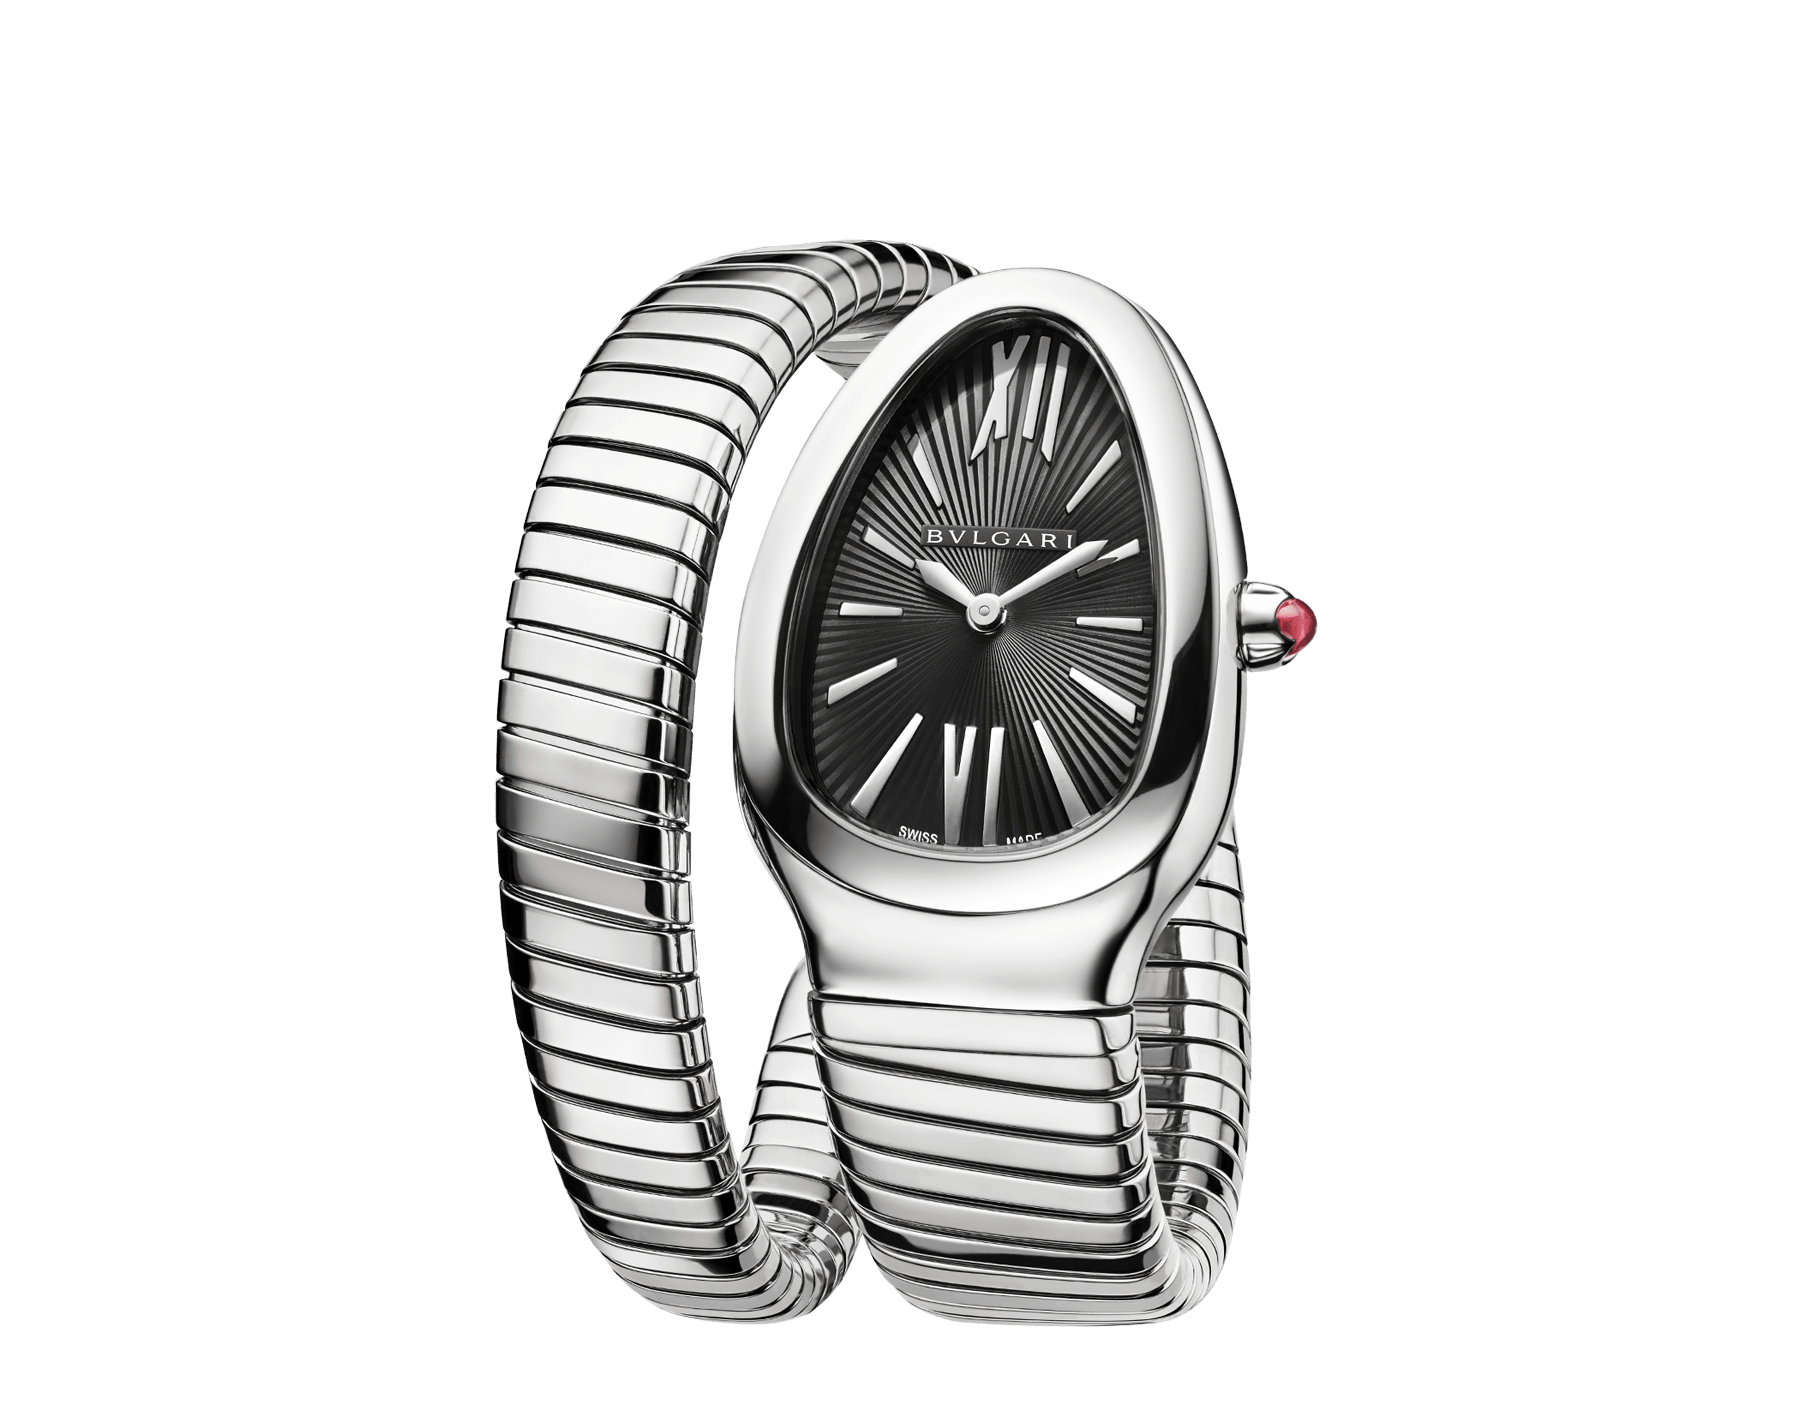 Serpenti Tubogas single spiral watch in stainless steel case and bracelet, with black opaline dial. SrpntTubogas-black-dial2 image 2